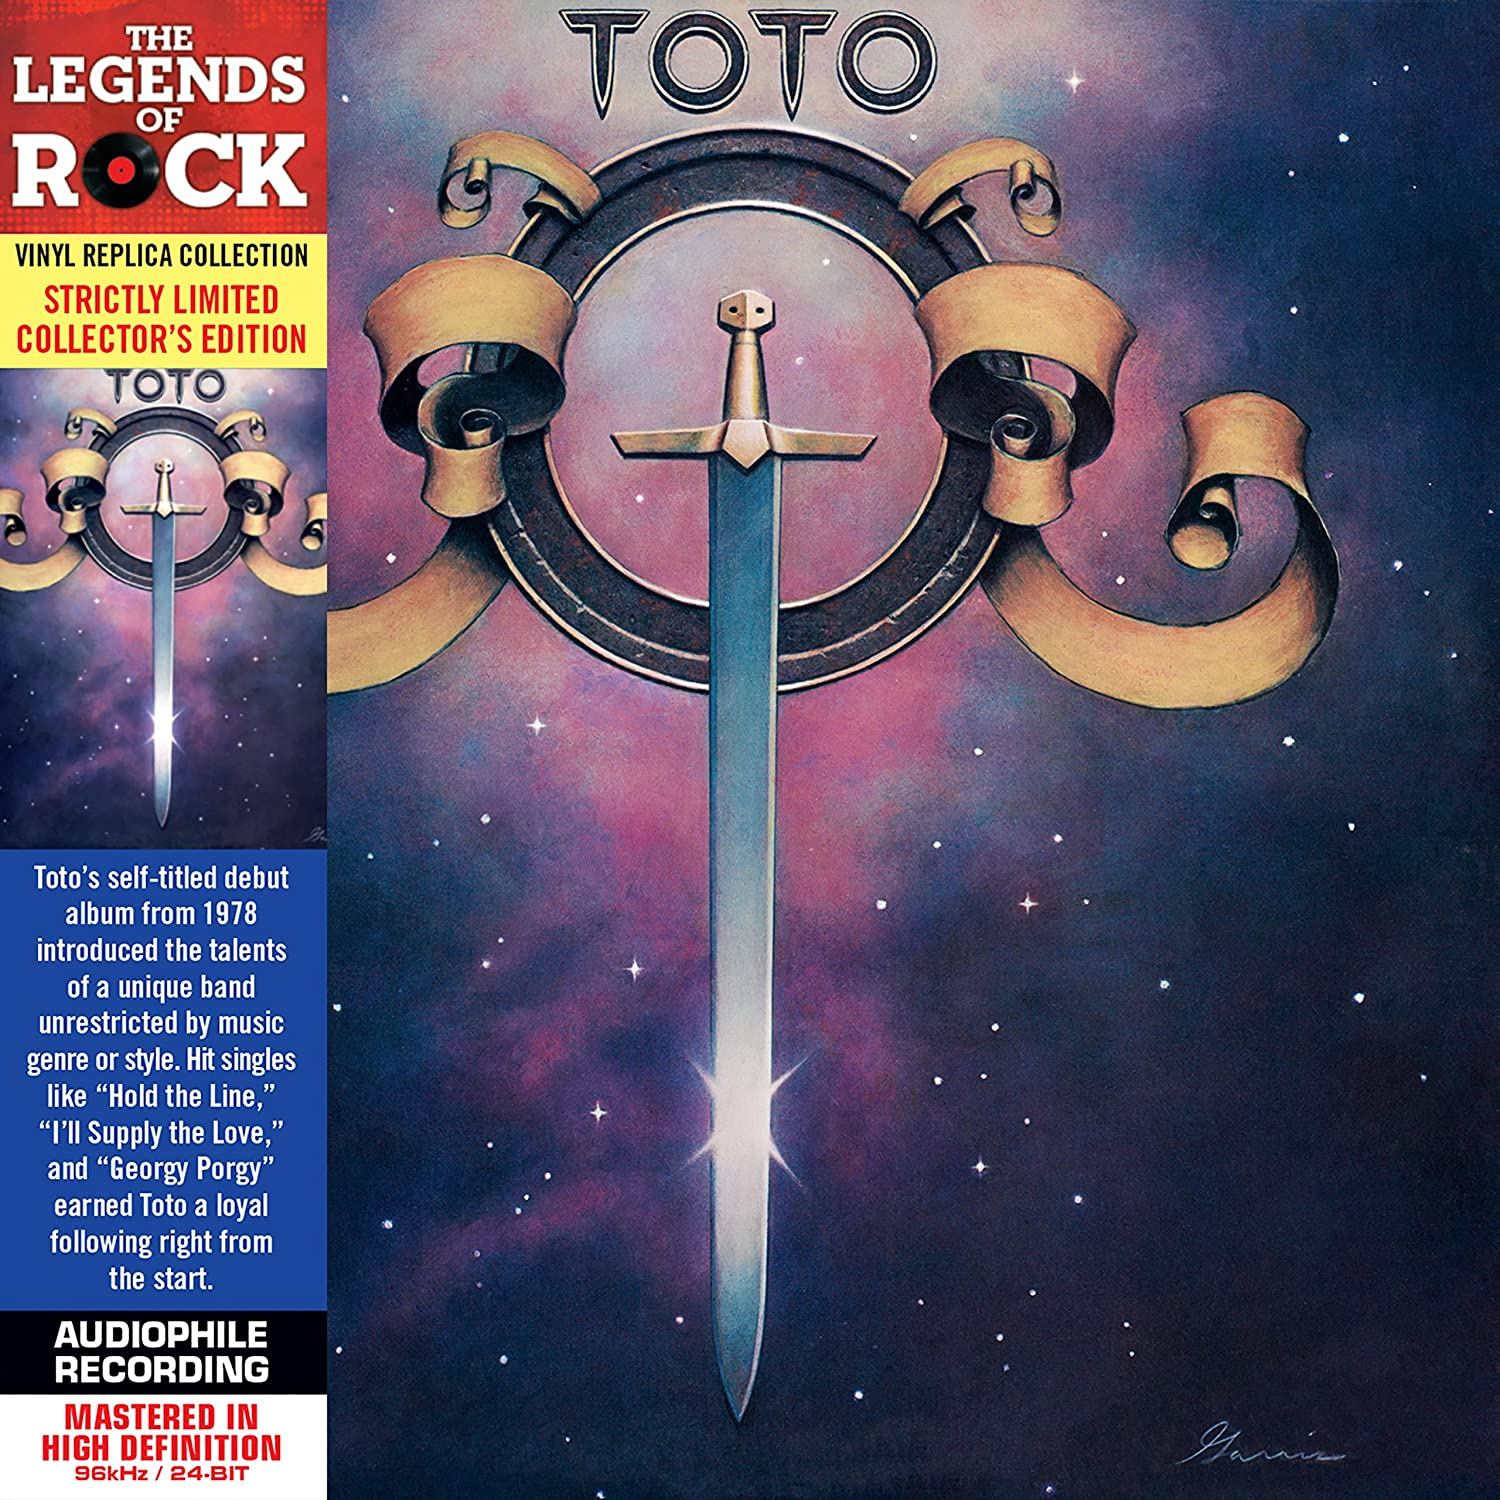 Toto - Toto - Cardboard Sleeve - High-Definition CD Deluxe Vinyl ...